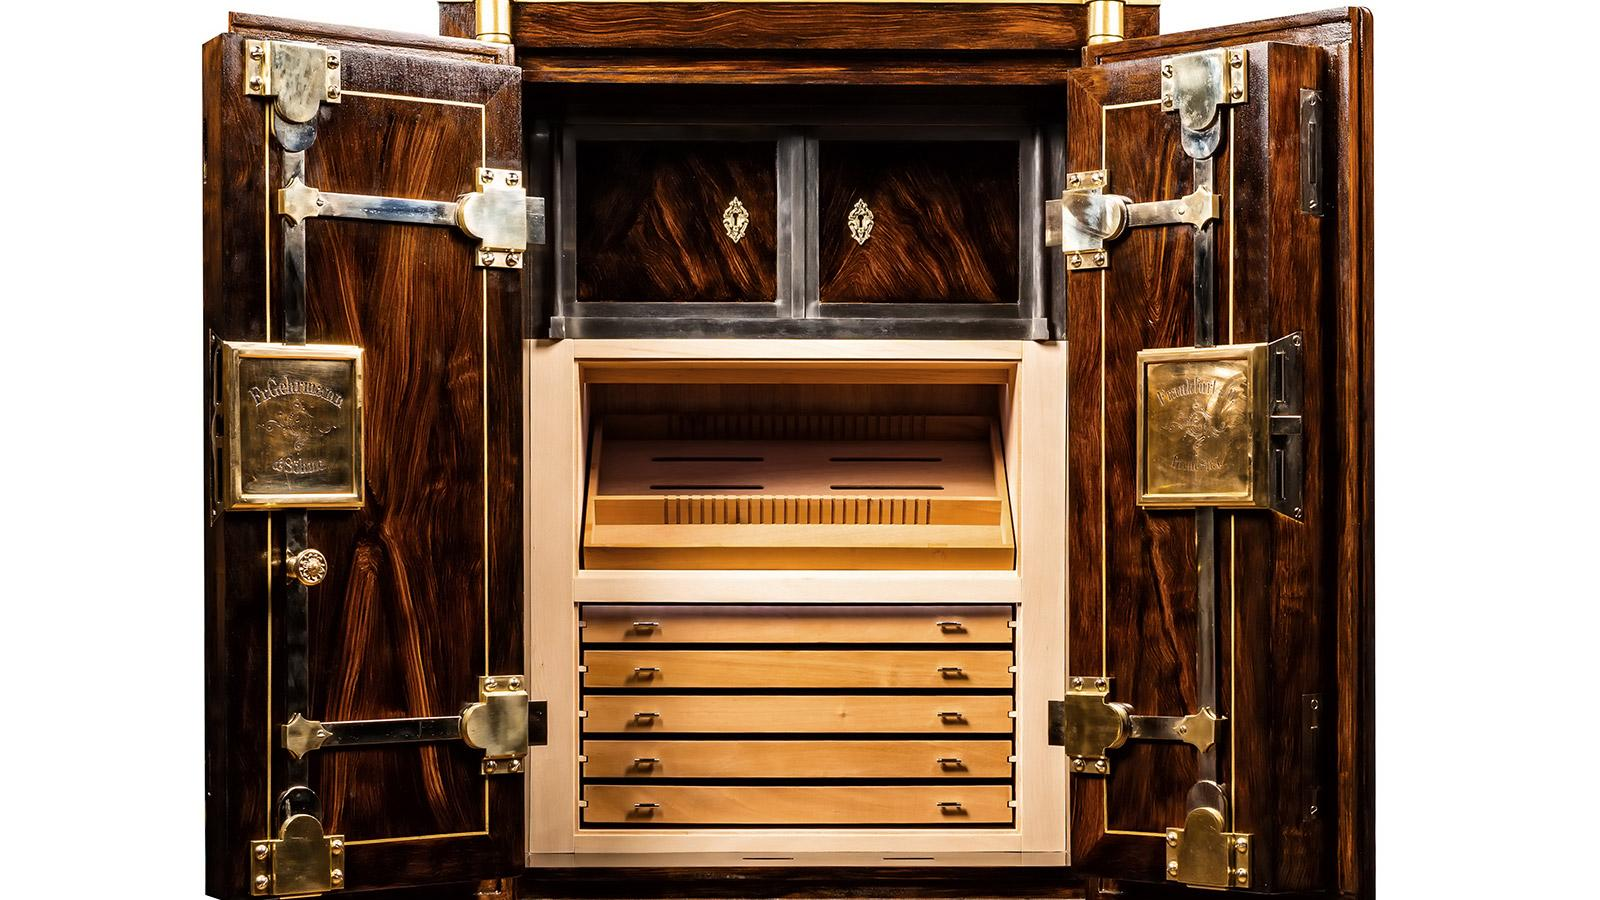 The cedar-lined cabinet, which consists of five drawers and one tray, holds up to 1,000 cigars.